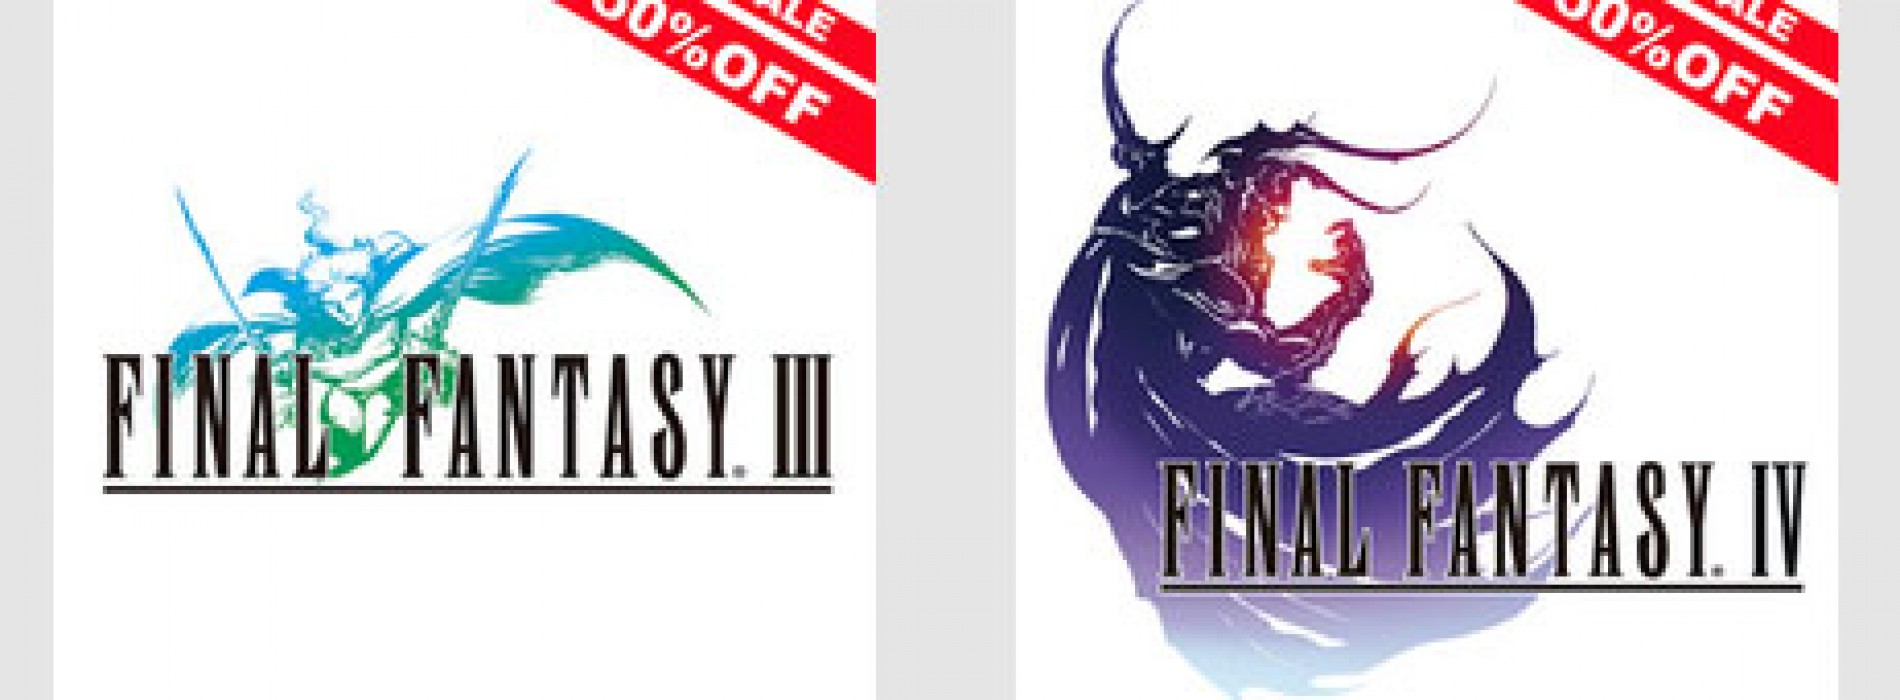 Final Fantasy III and IV now 50% off on Google Play